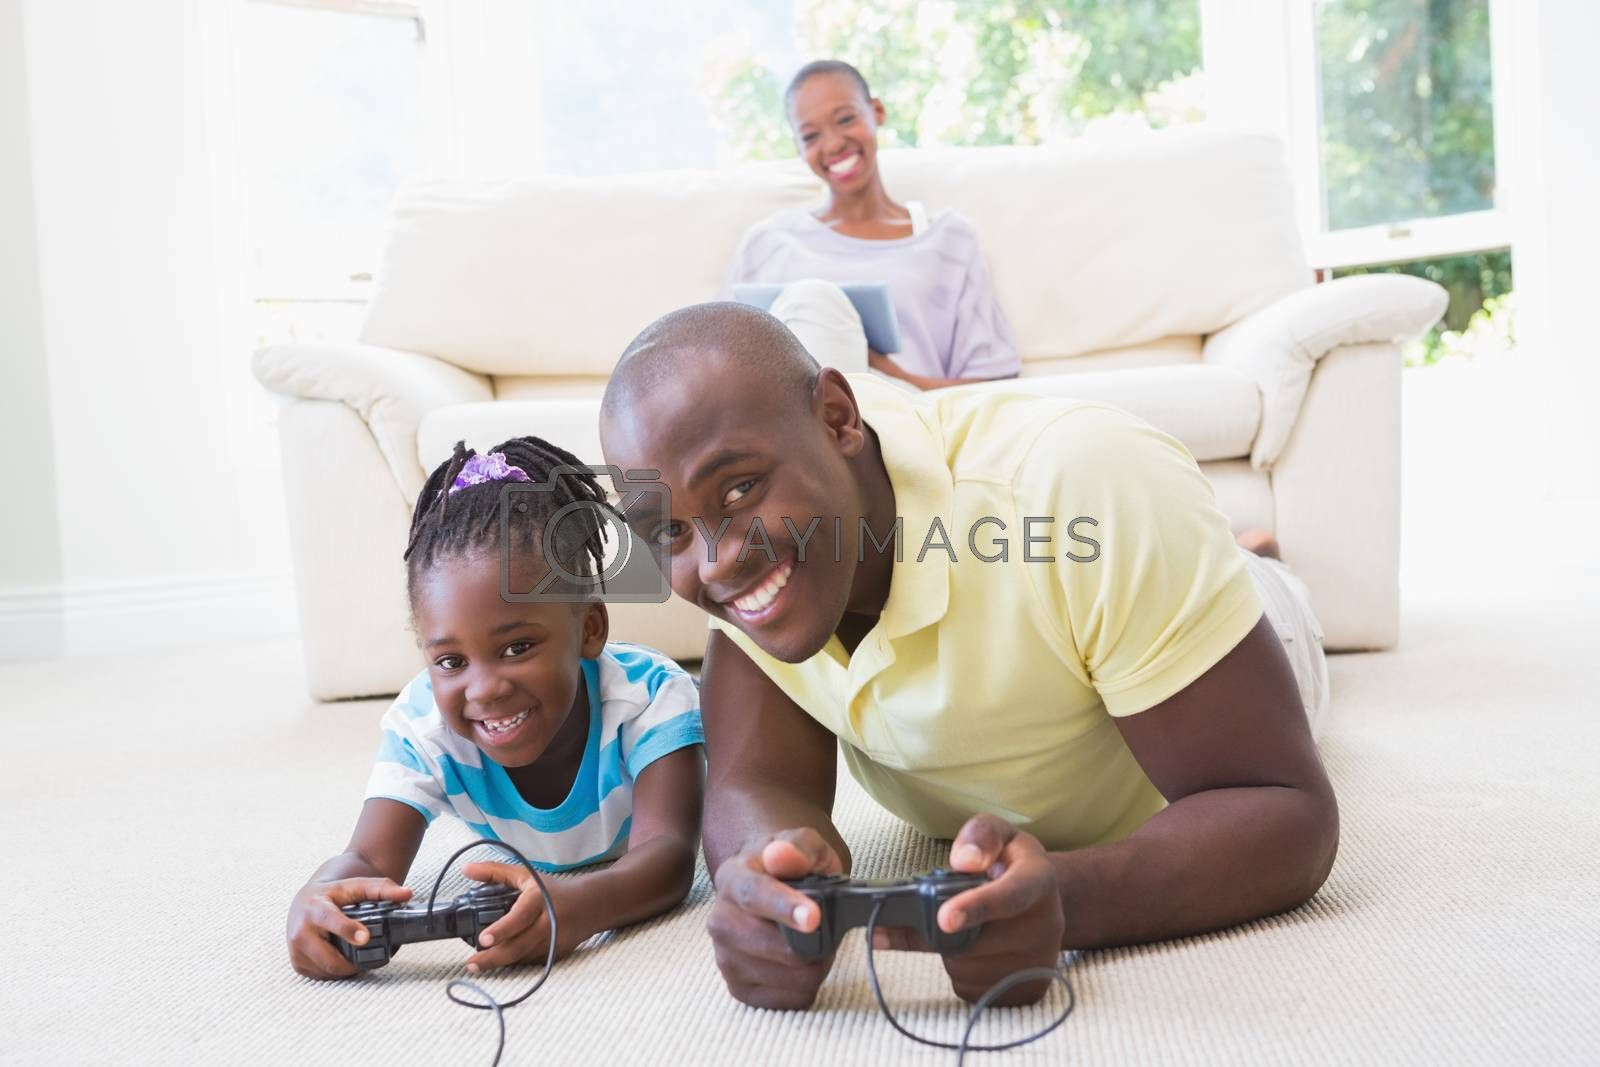 Royalty free image of Portrait of a happy smiling father playing with her daughter at video games  by Wavebreakmedia